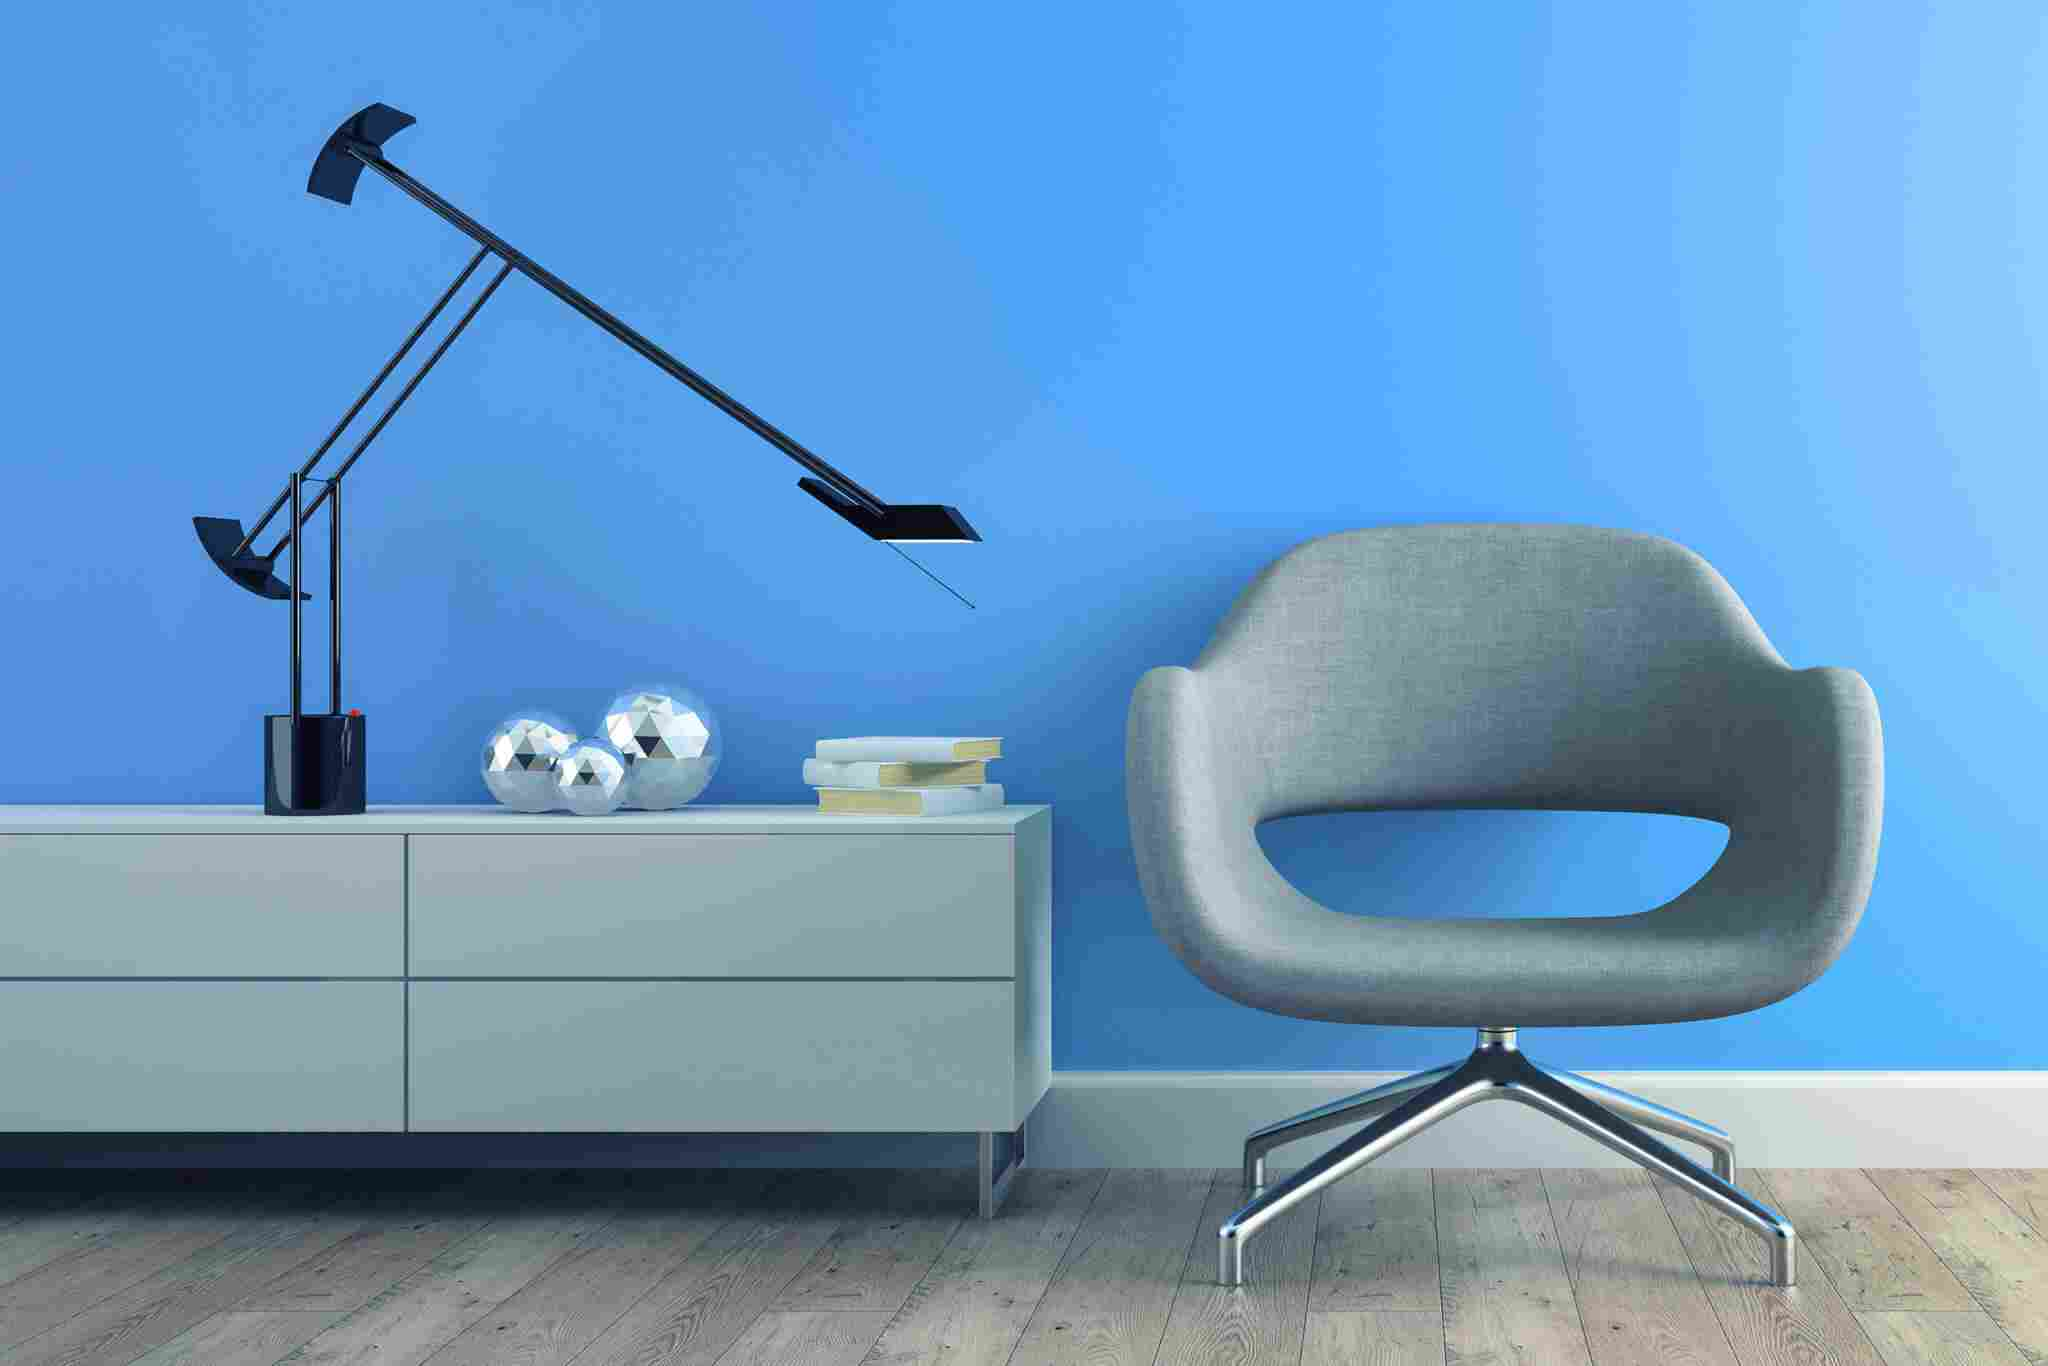 https://ra-zoom.kz/wp-content/uploads/2017/05/image-chair-blue-wall.jpg